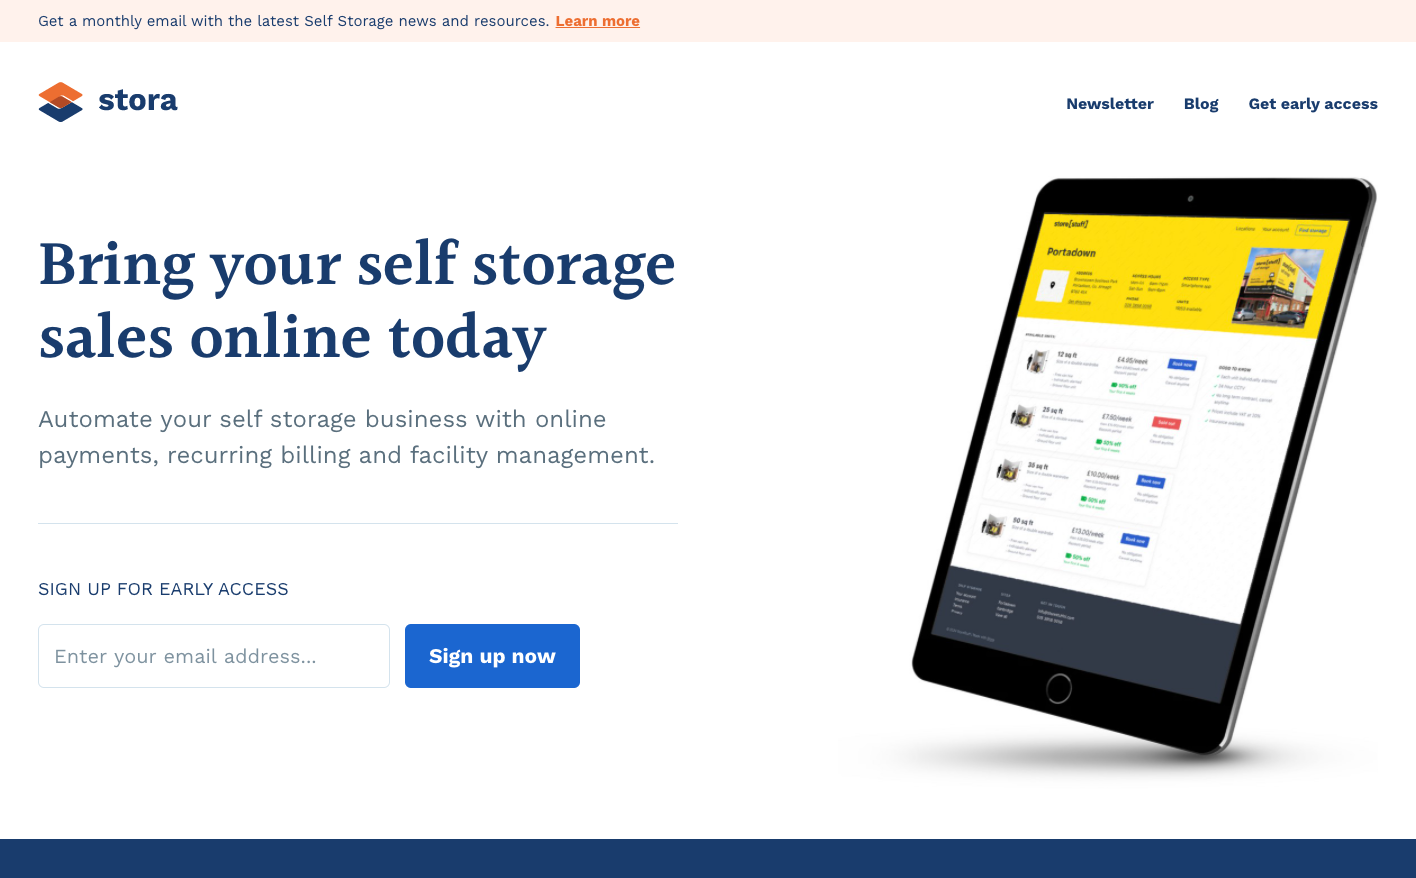 [Stora](http://stora.co) is a new software product designed to make it quick and easy to get your self storage business online. You can be taking online bookings and payments within 10 minutes!